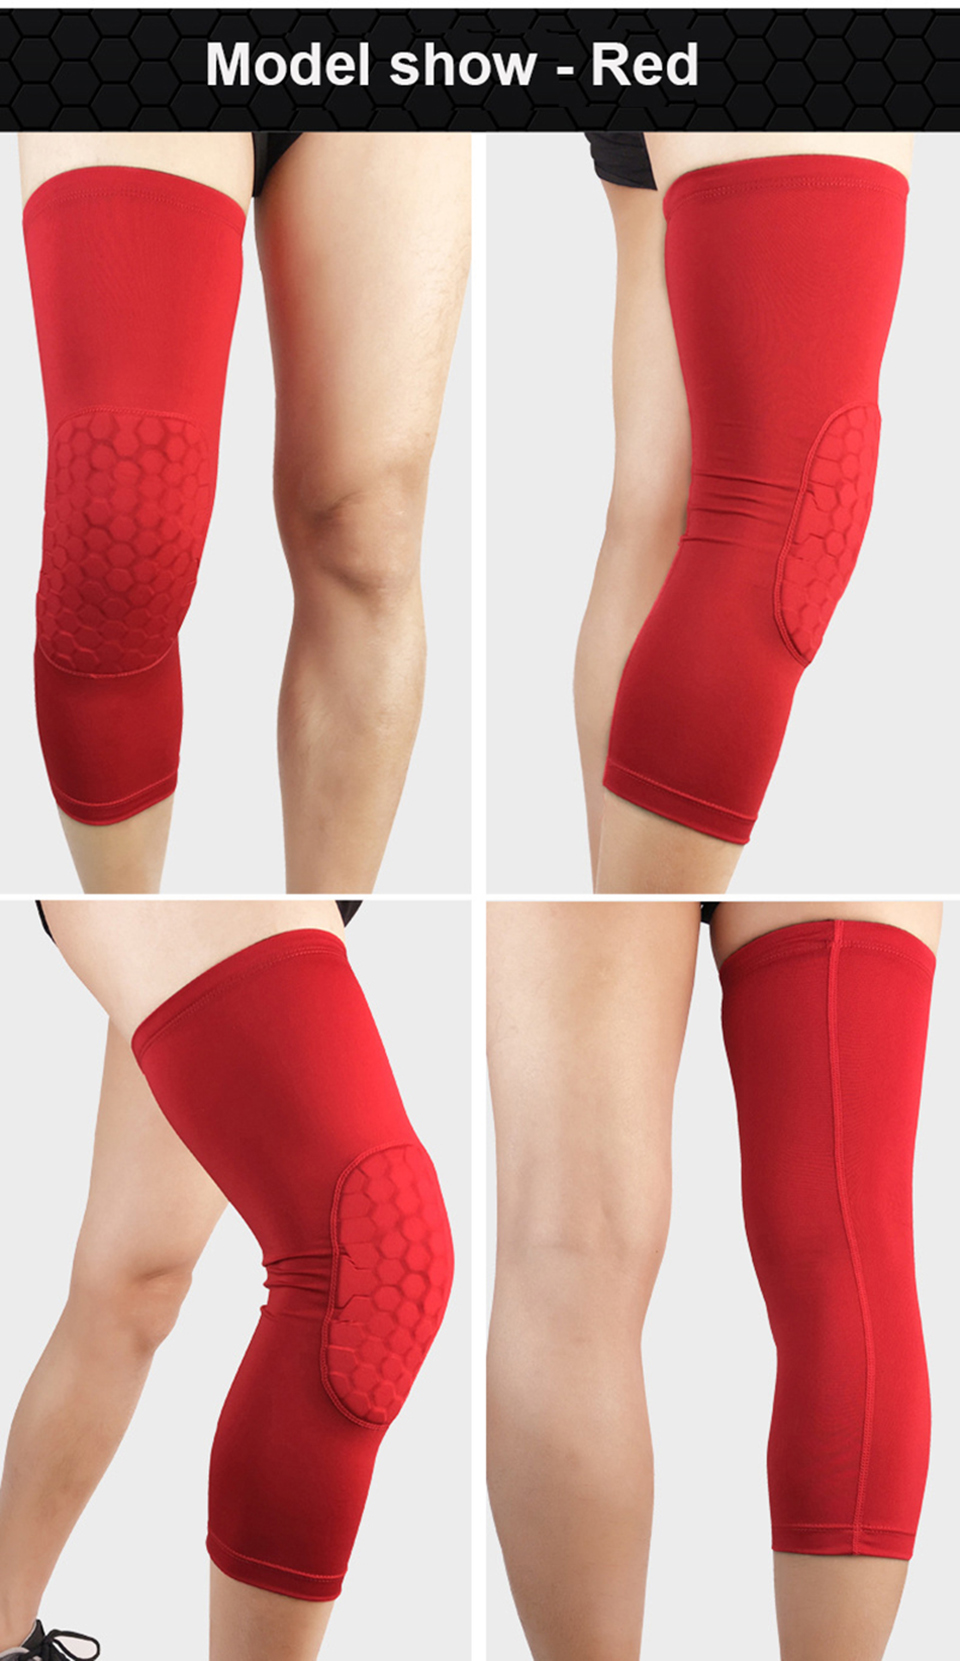 Breathable Honeycomb Knee Calf Compression Support Protection Brace Leg Sleeve Pad Sadoun Sales International